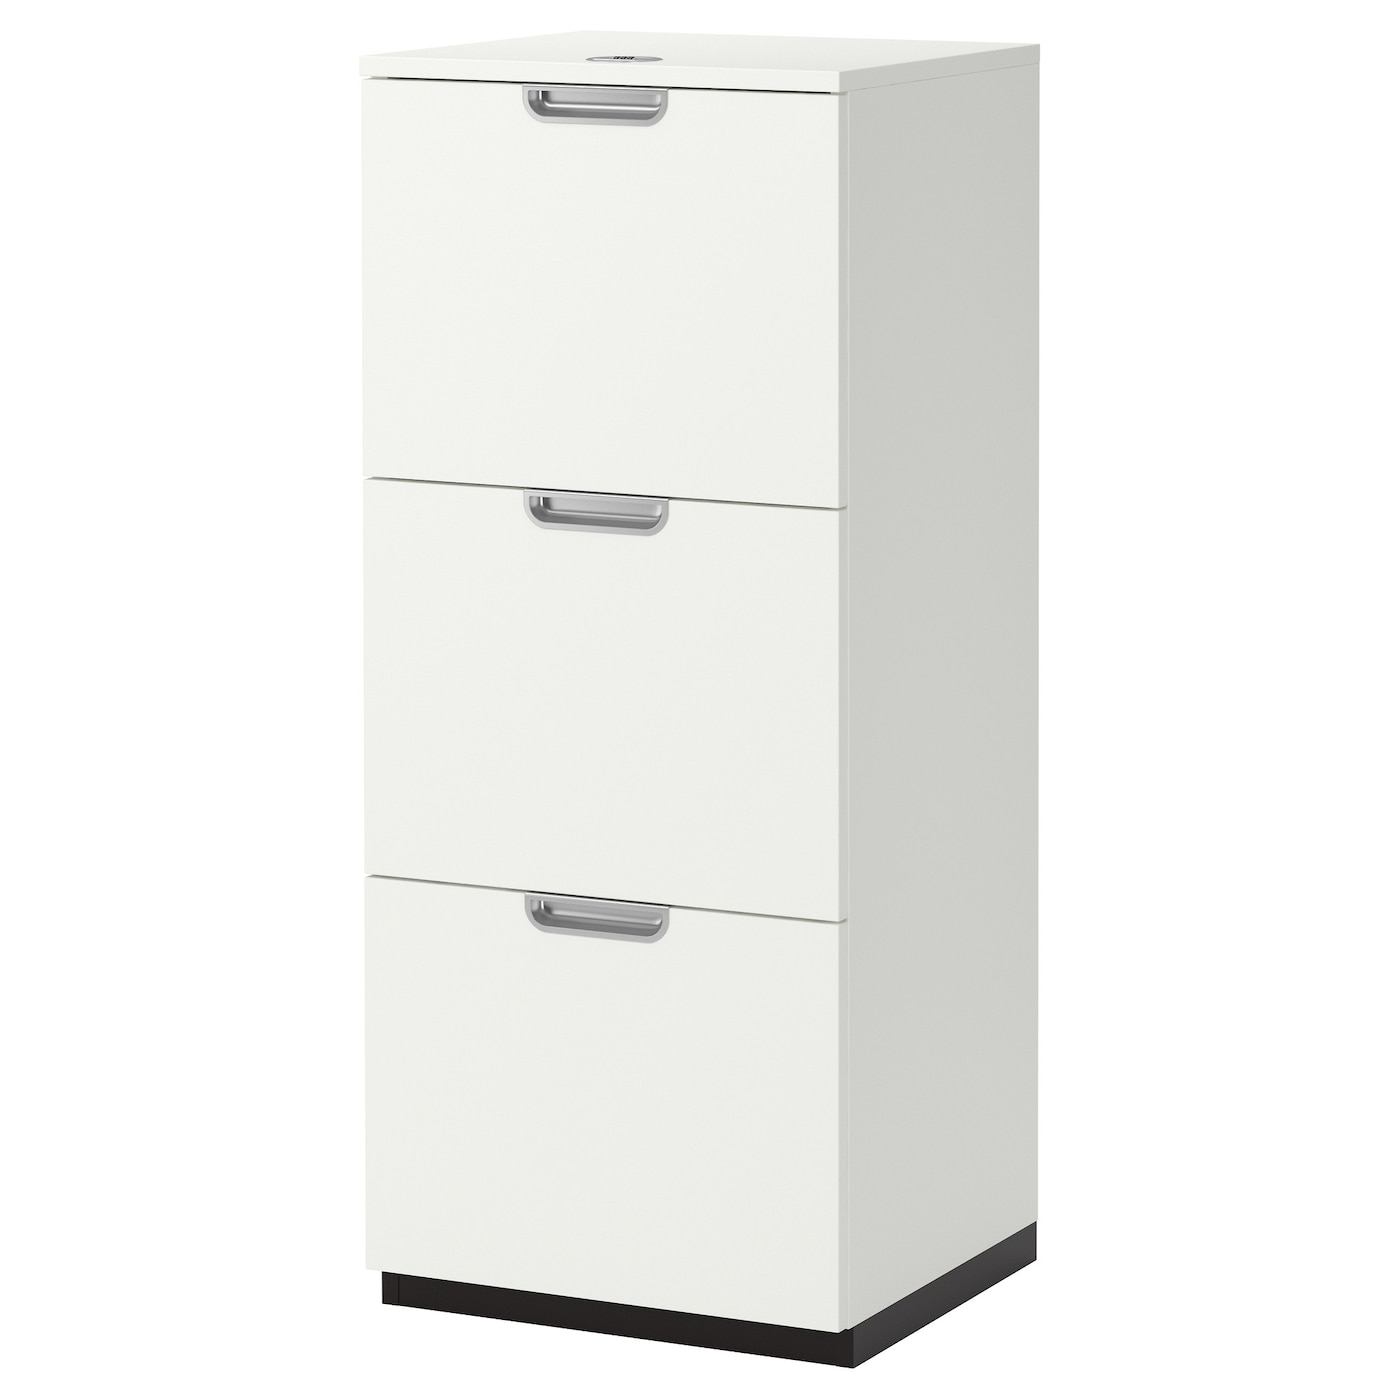 galant file cabinet white 51x120 cm ikea. Black Bedroom Furniture Sets. Home Design Ideas